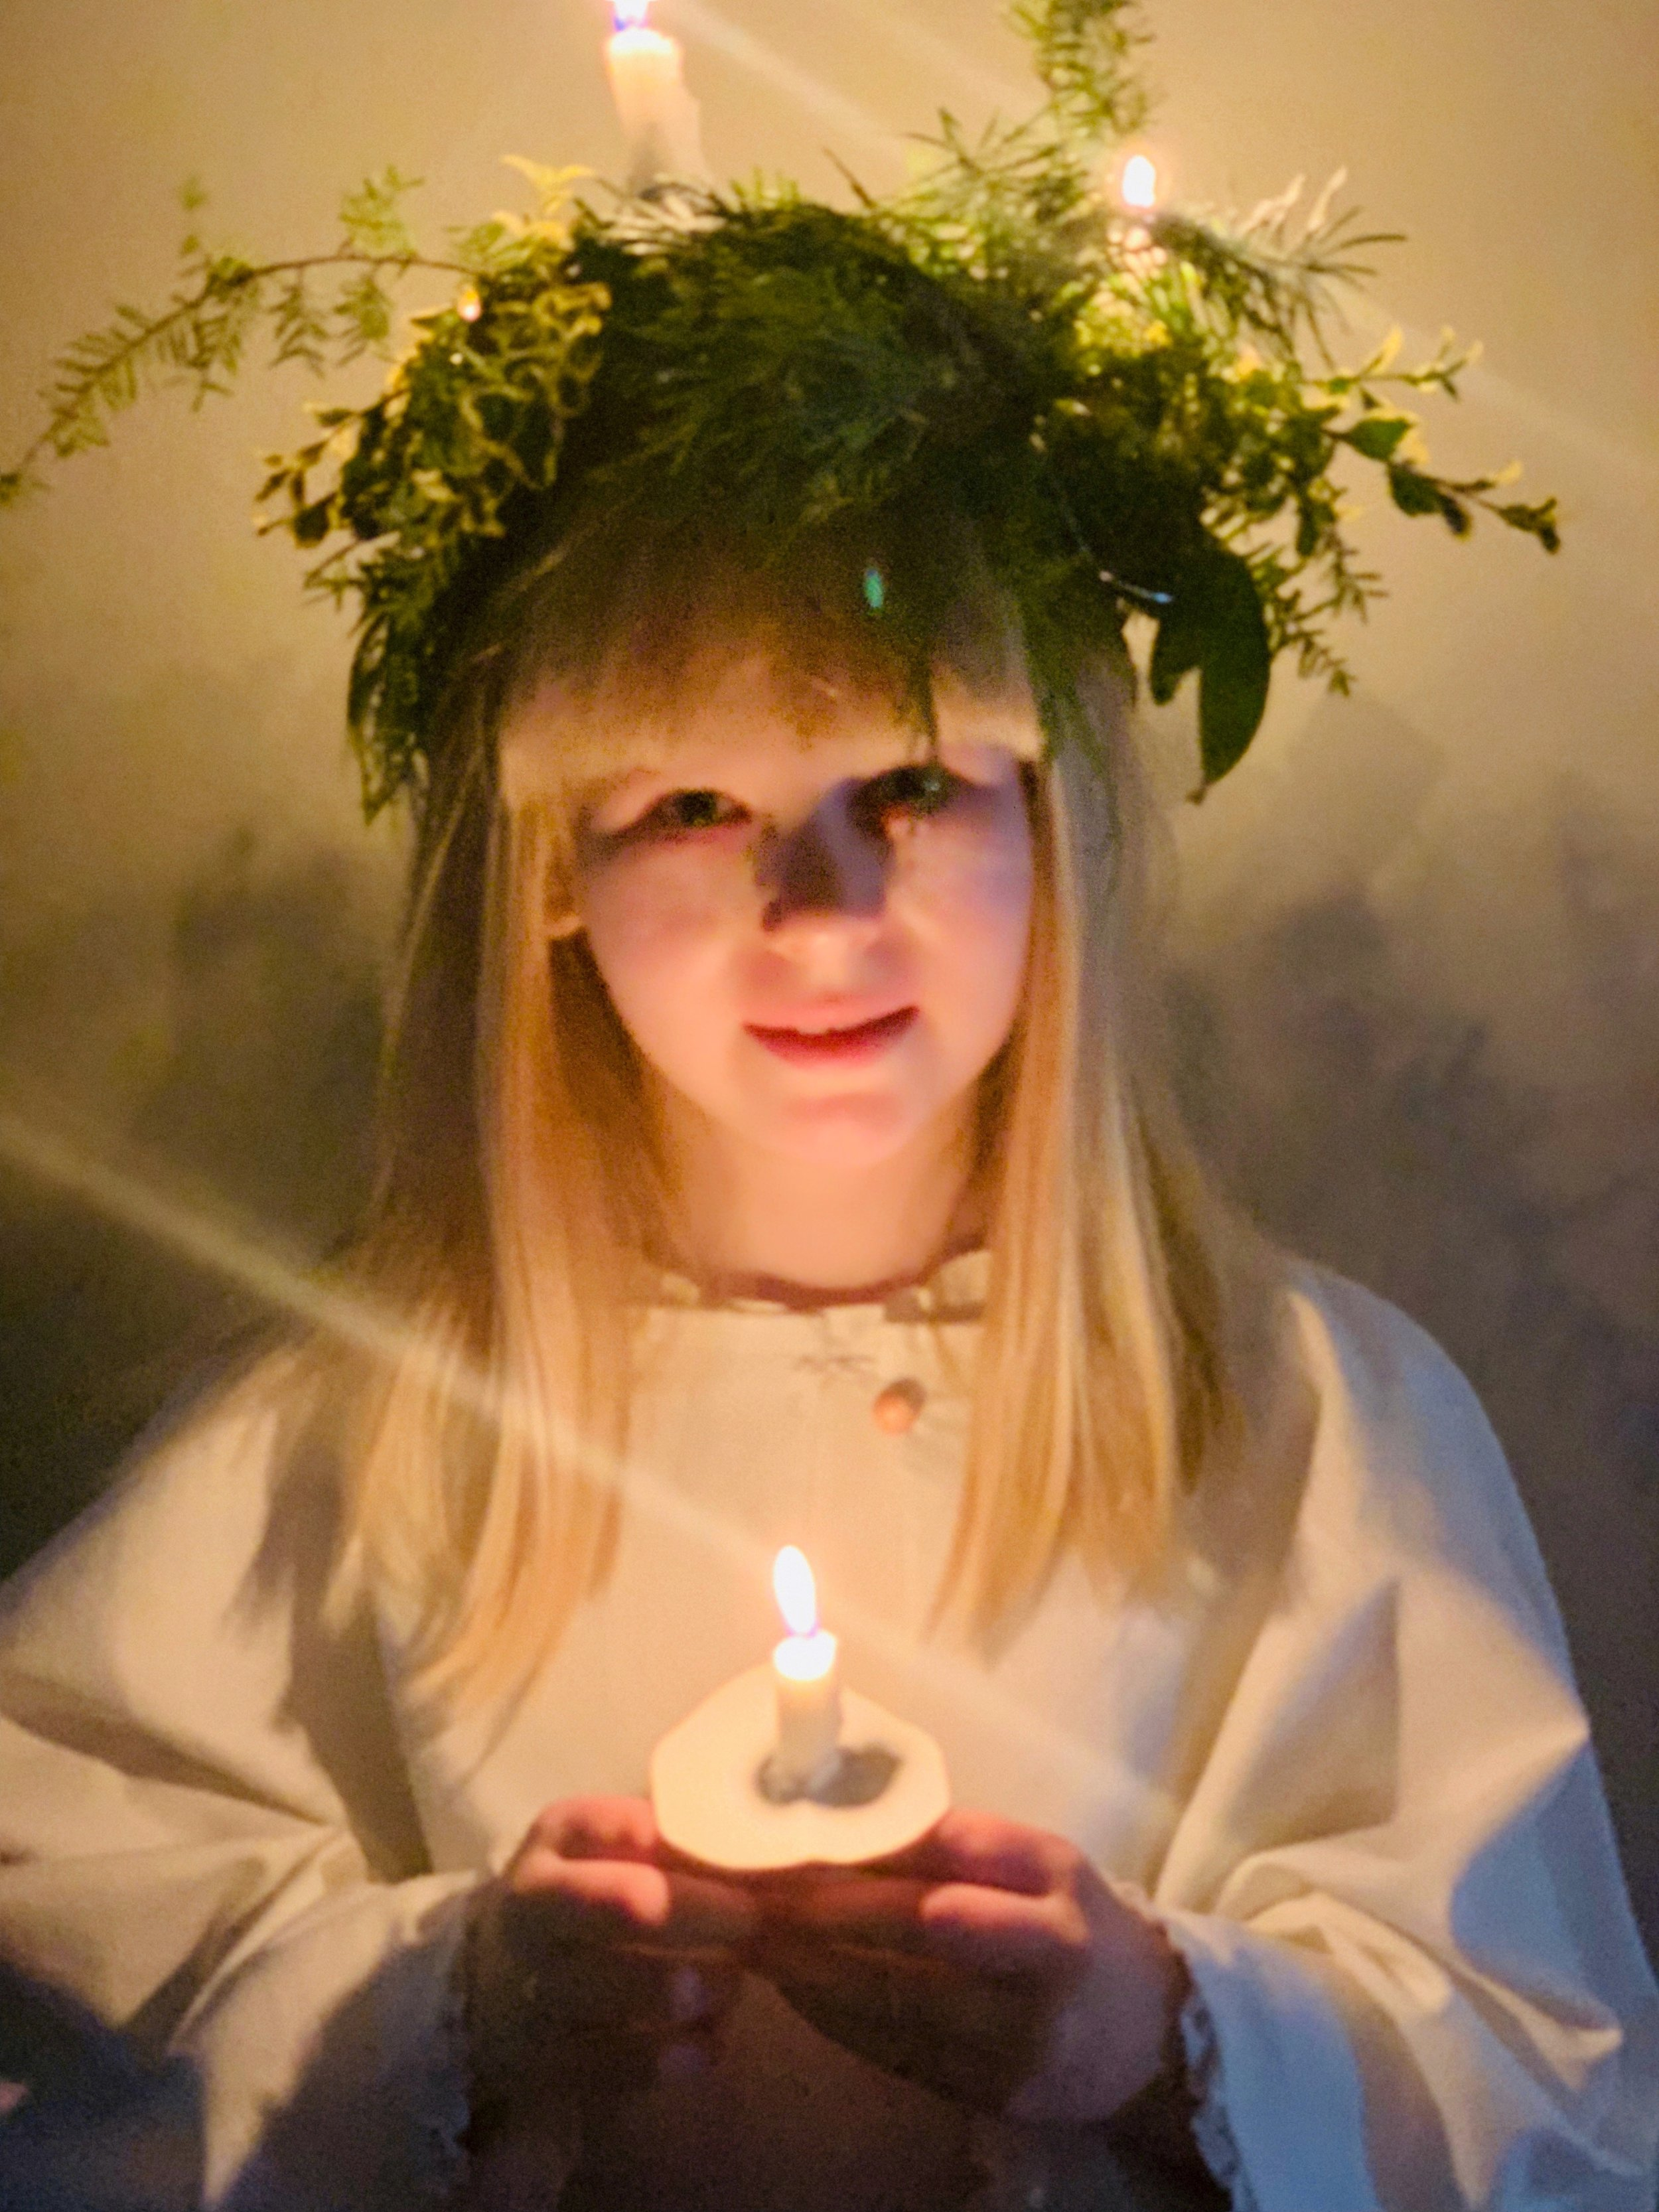 The oldest second grade girl wears a wreath of lit candles, representing Santa Lucia.